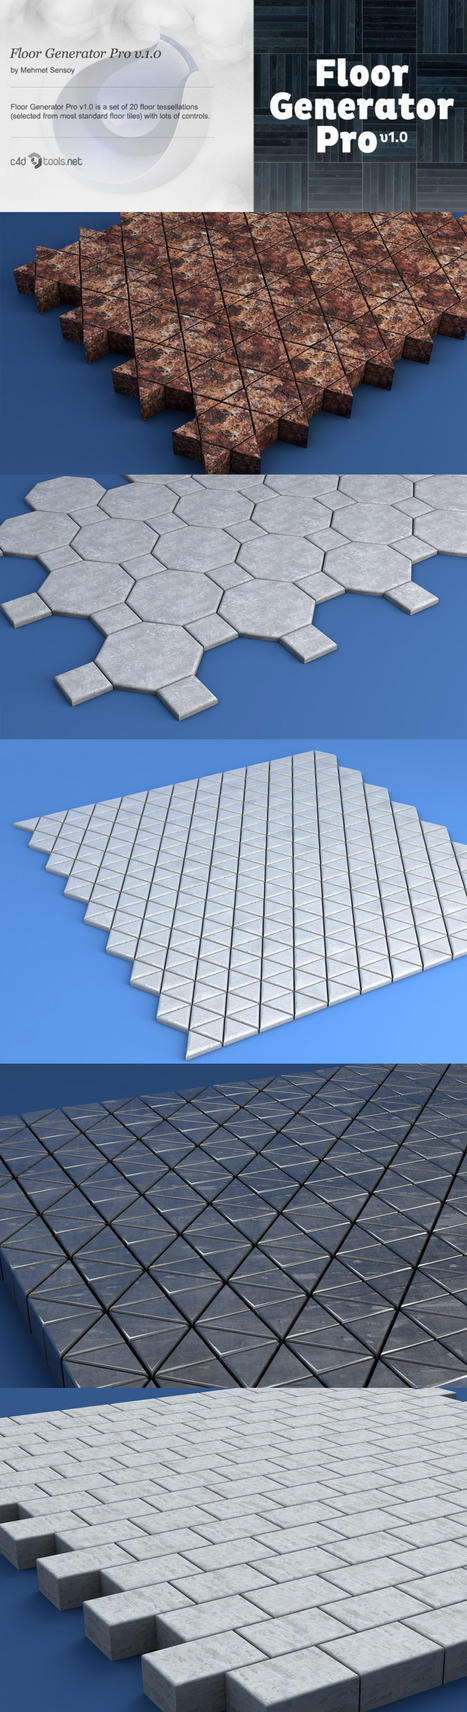 Floor Generator Pro for Cinema 4D by Grasycho